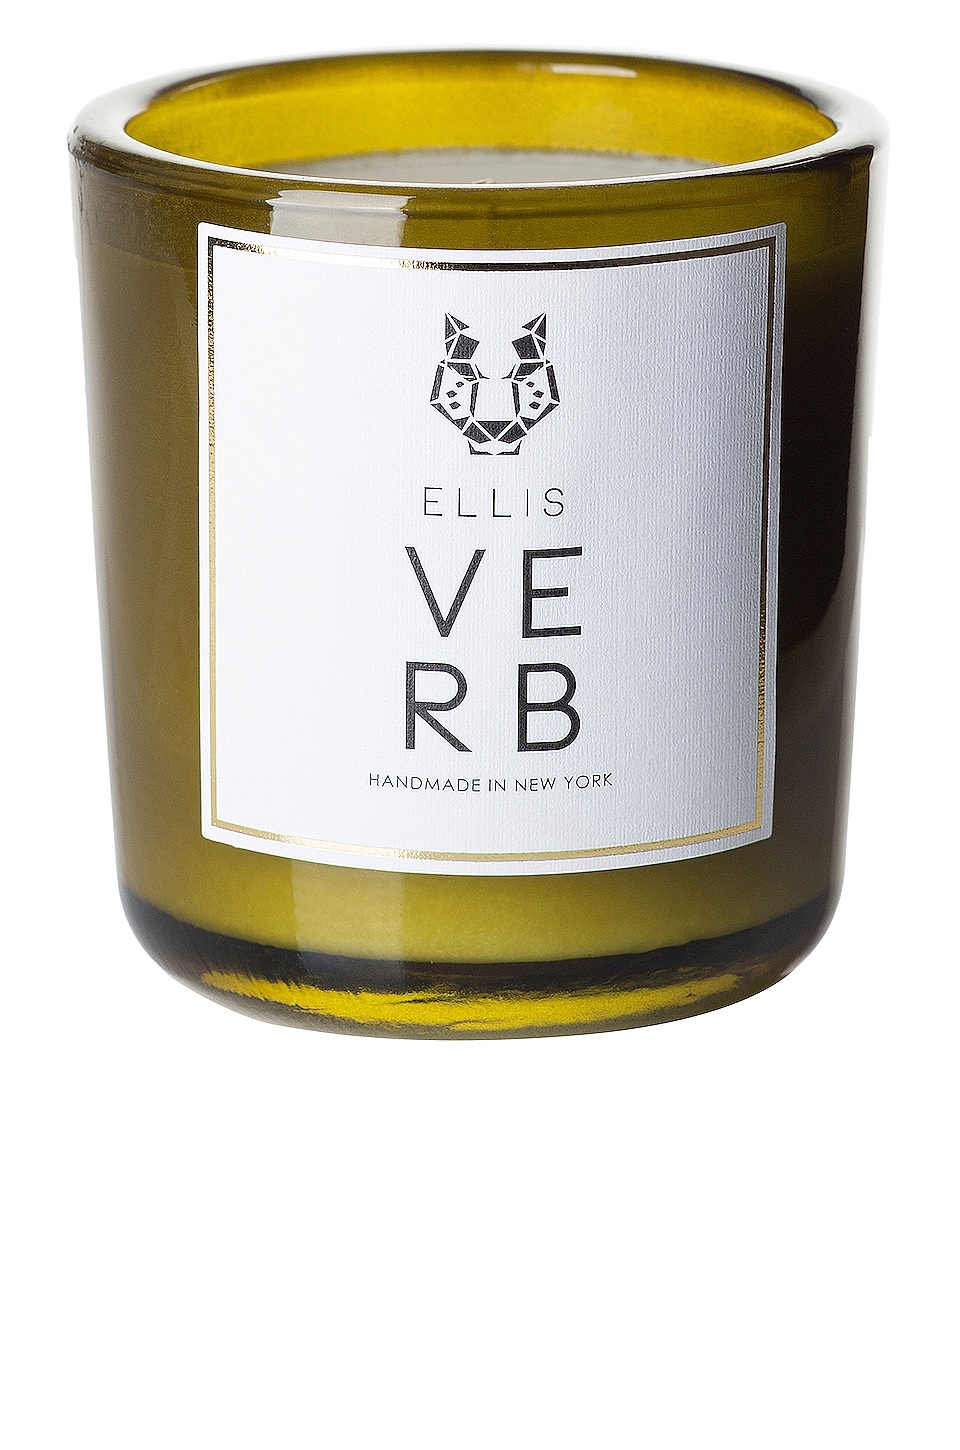 Ellis Brooklyn Verb Terrific Scented Candle in Verb